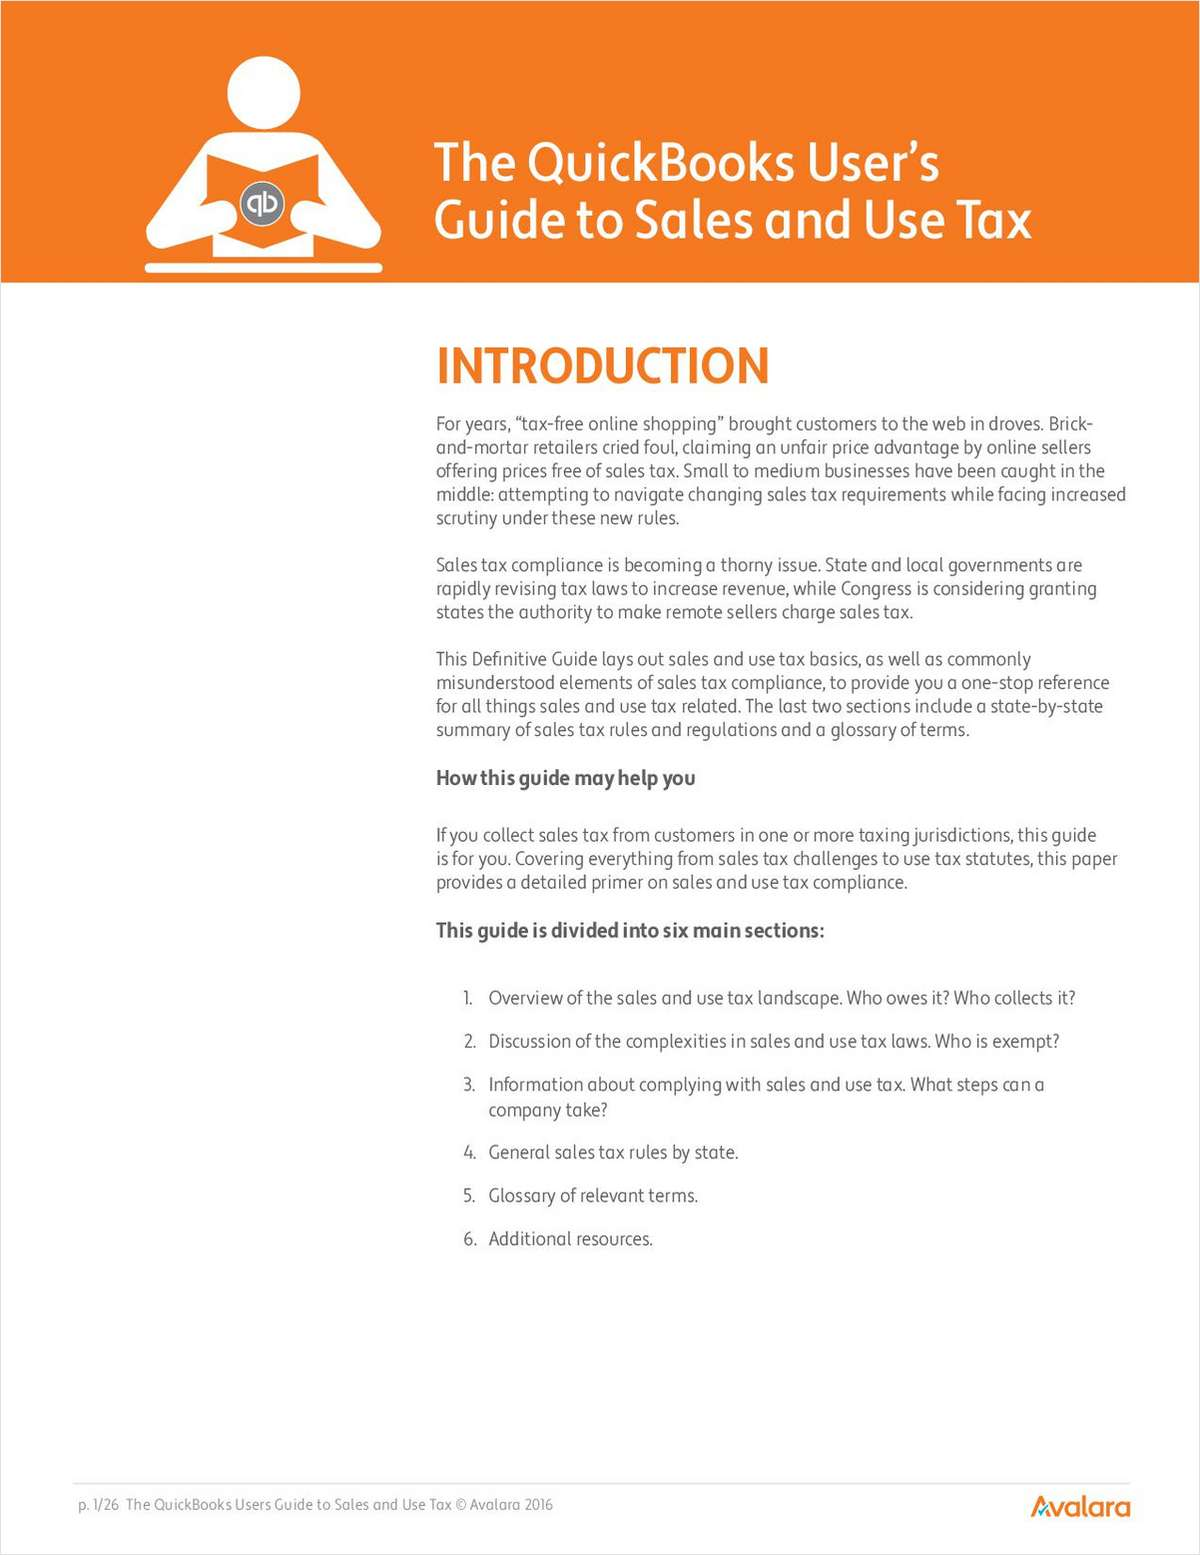 The QuickBooks User's Guide to Sales and Use Tax